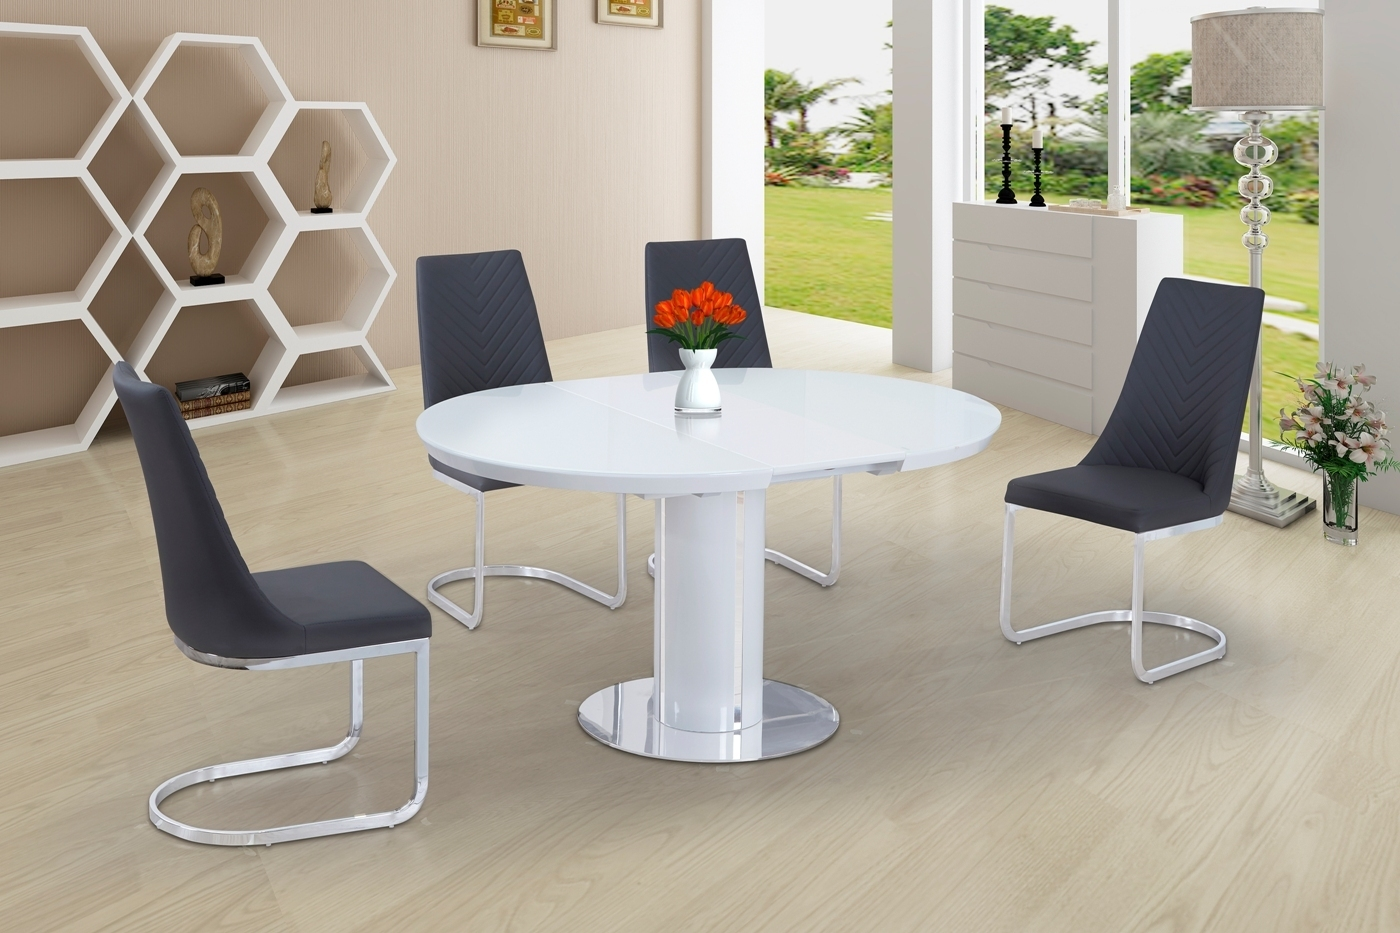 Round White Glass High Gloss Dining Table and 4 Grey ...